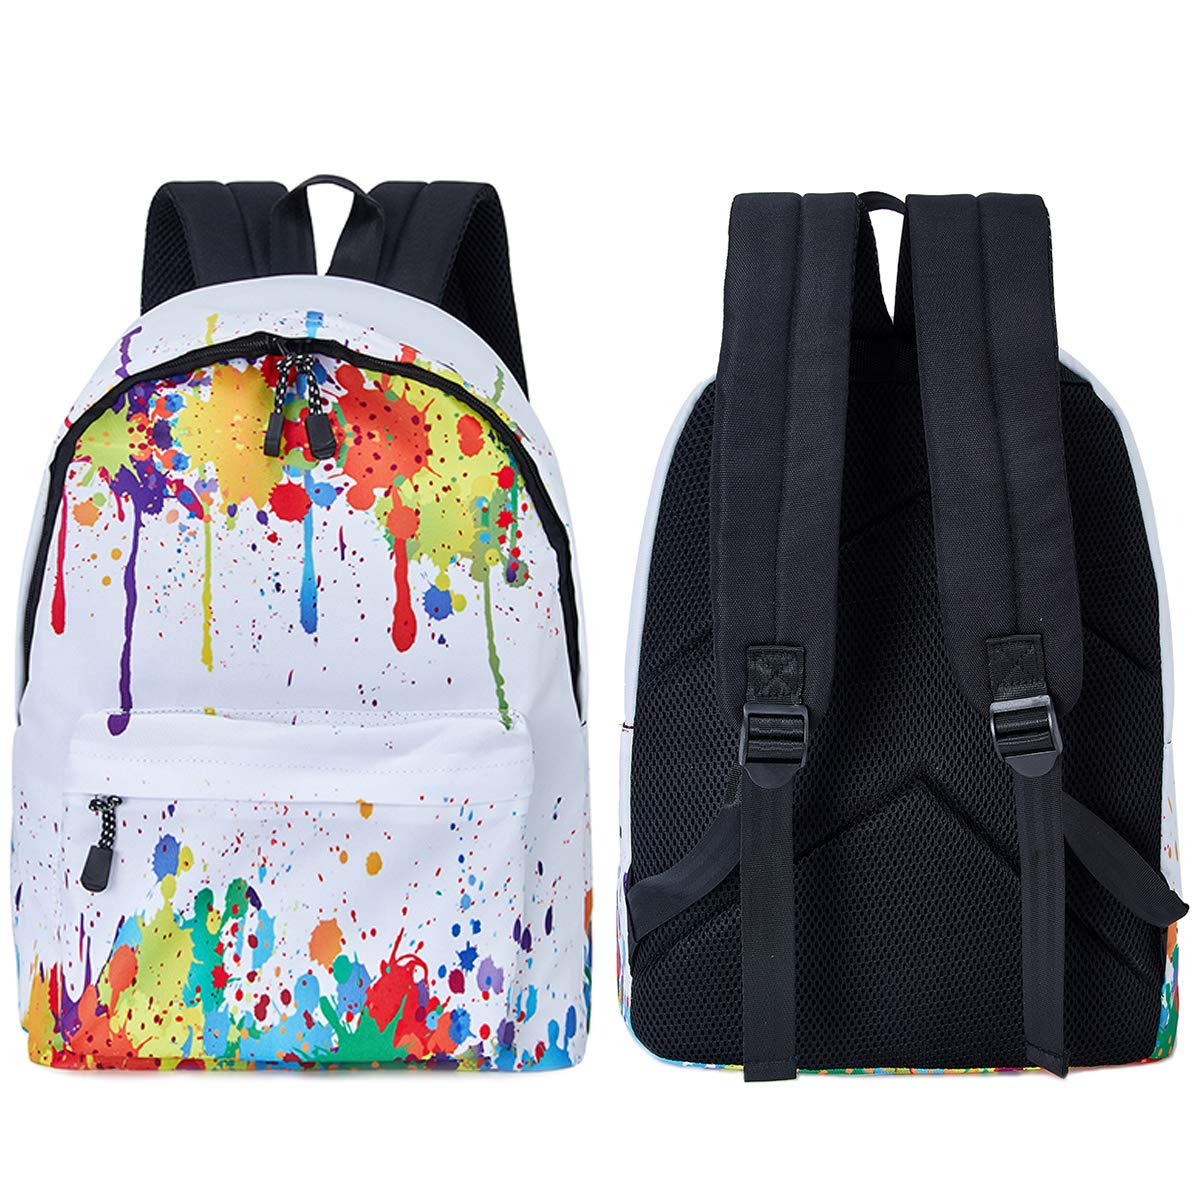 TUONROAD Cool 3D Printed Backpack White Tiedye Casual School Travel Laptop Backpack Rucksack Daypack Bags